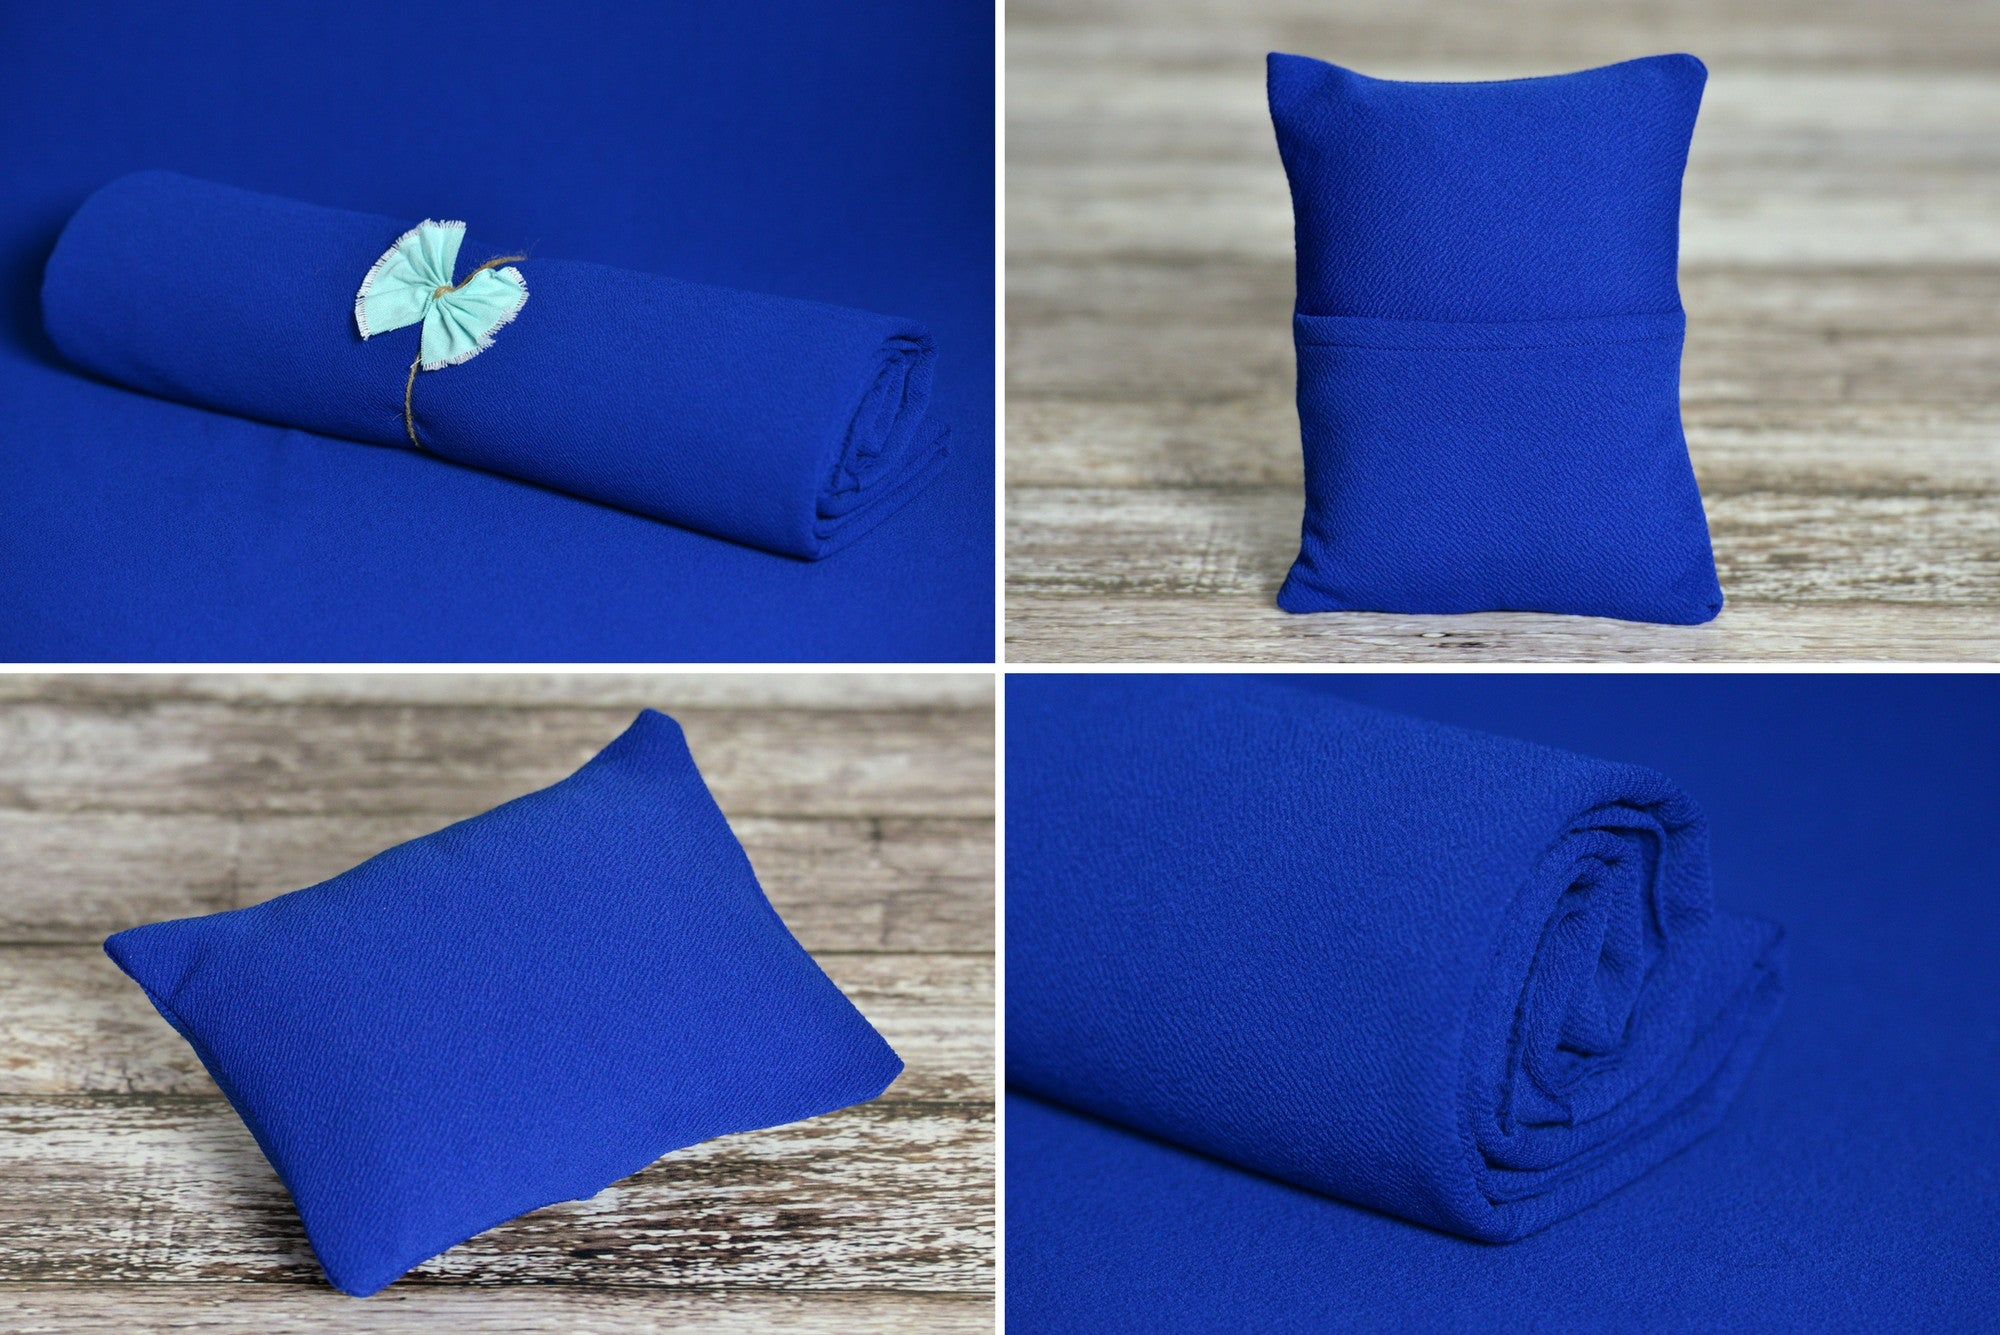 Matching Mini Pillow with Cover AND Bean Bag Fabric - Textured - New Navy-Newborn Photography Props